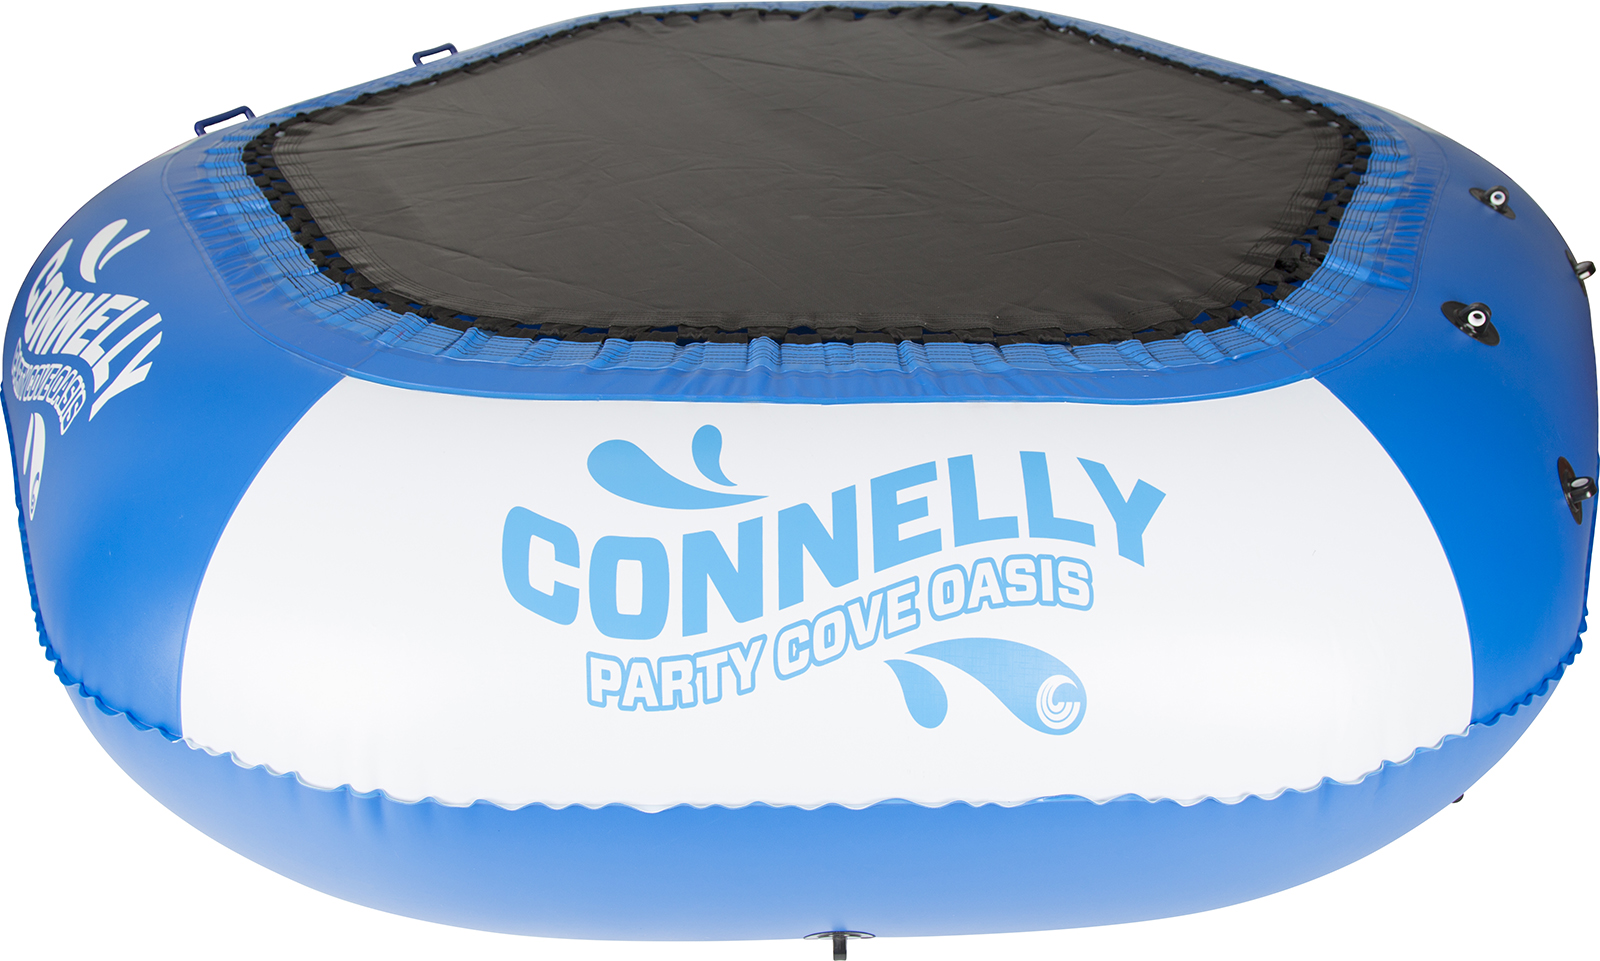 PARTY COVE OASIS CONNELLY 2018